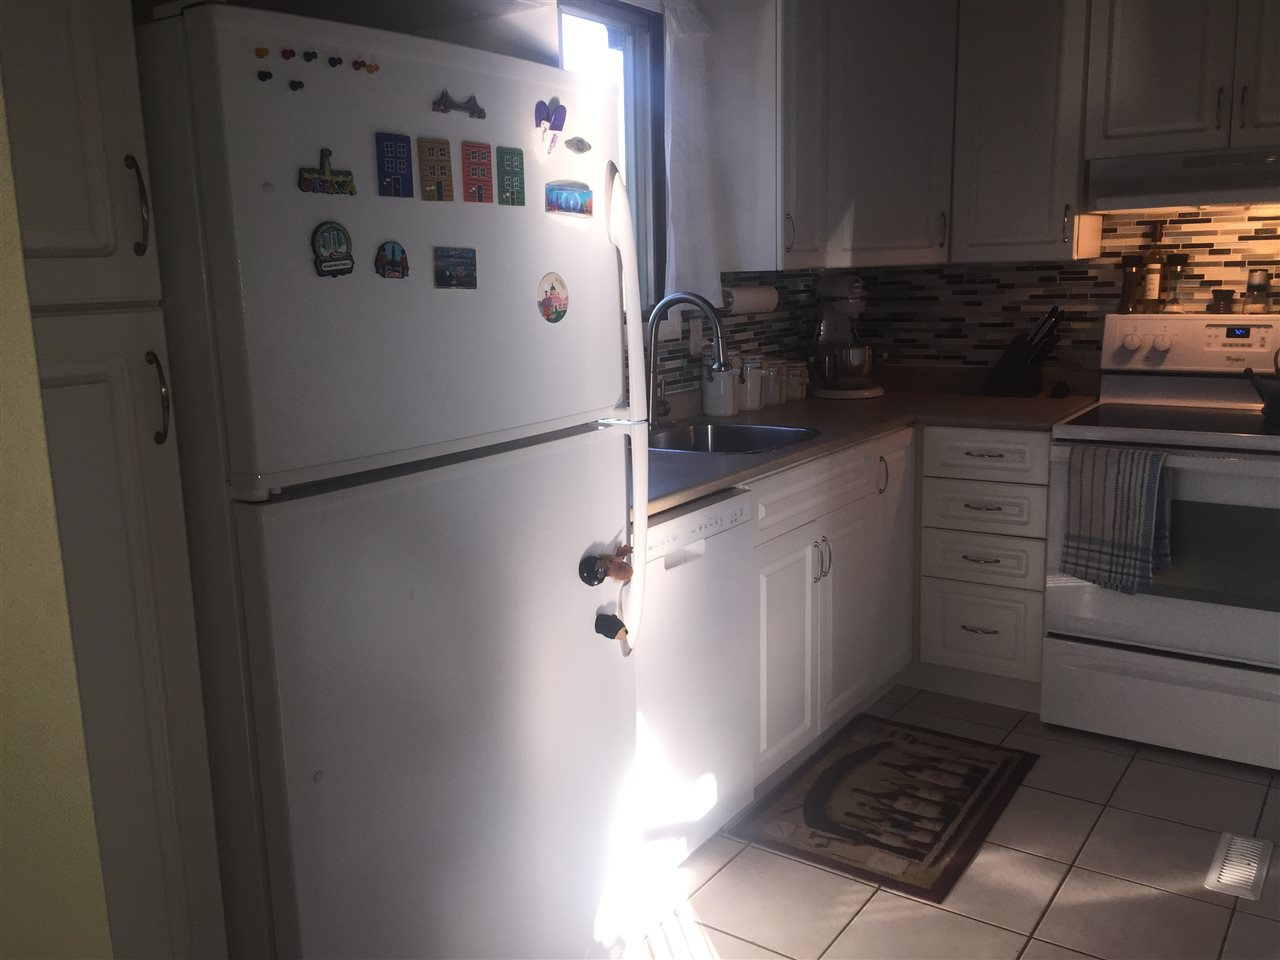 Pantry to left, Kitchen